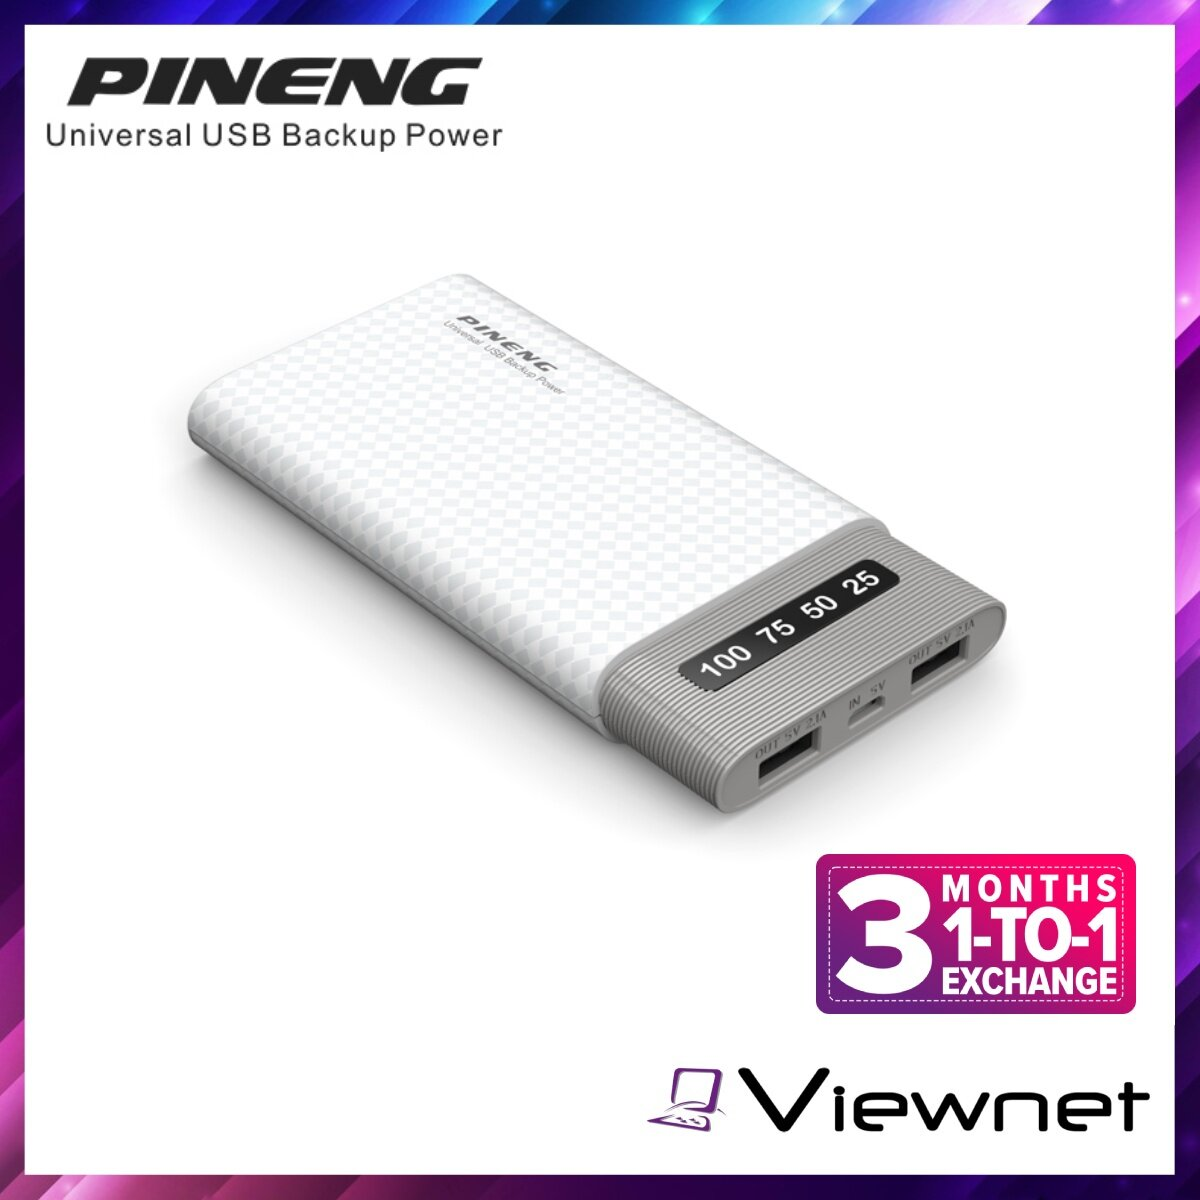 Pineng 10000mAh Lithium Polymer Power Bank (PN-981), 2-Out 2.1A, Slim and Lightweight, Black / White